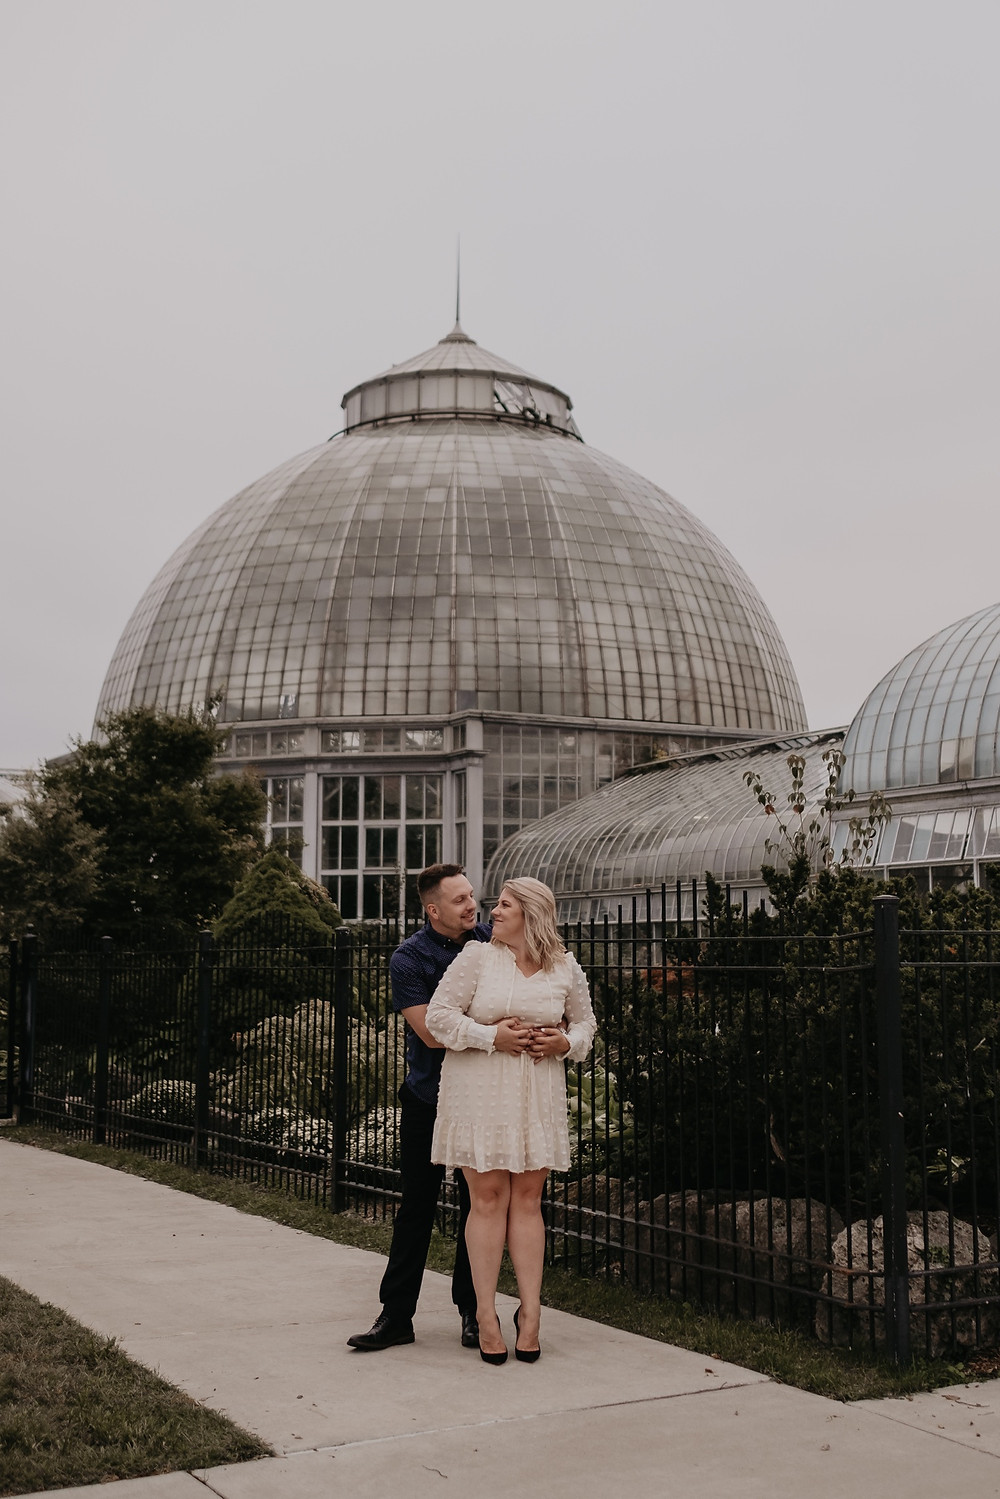 Belle Isle Conservatory engagement photos. Photography by Nicole Leanne Photography